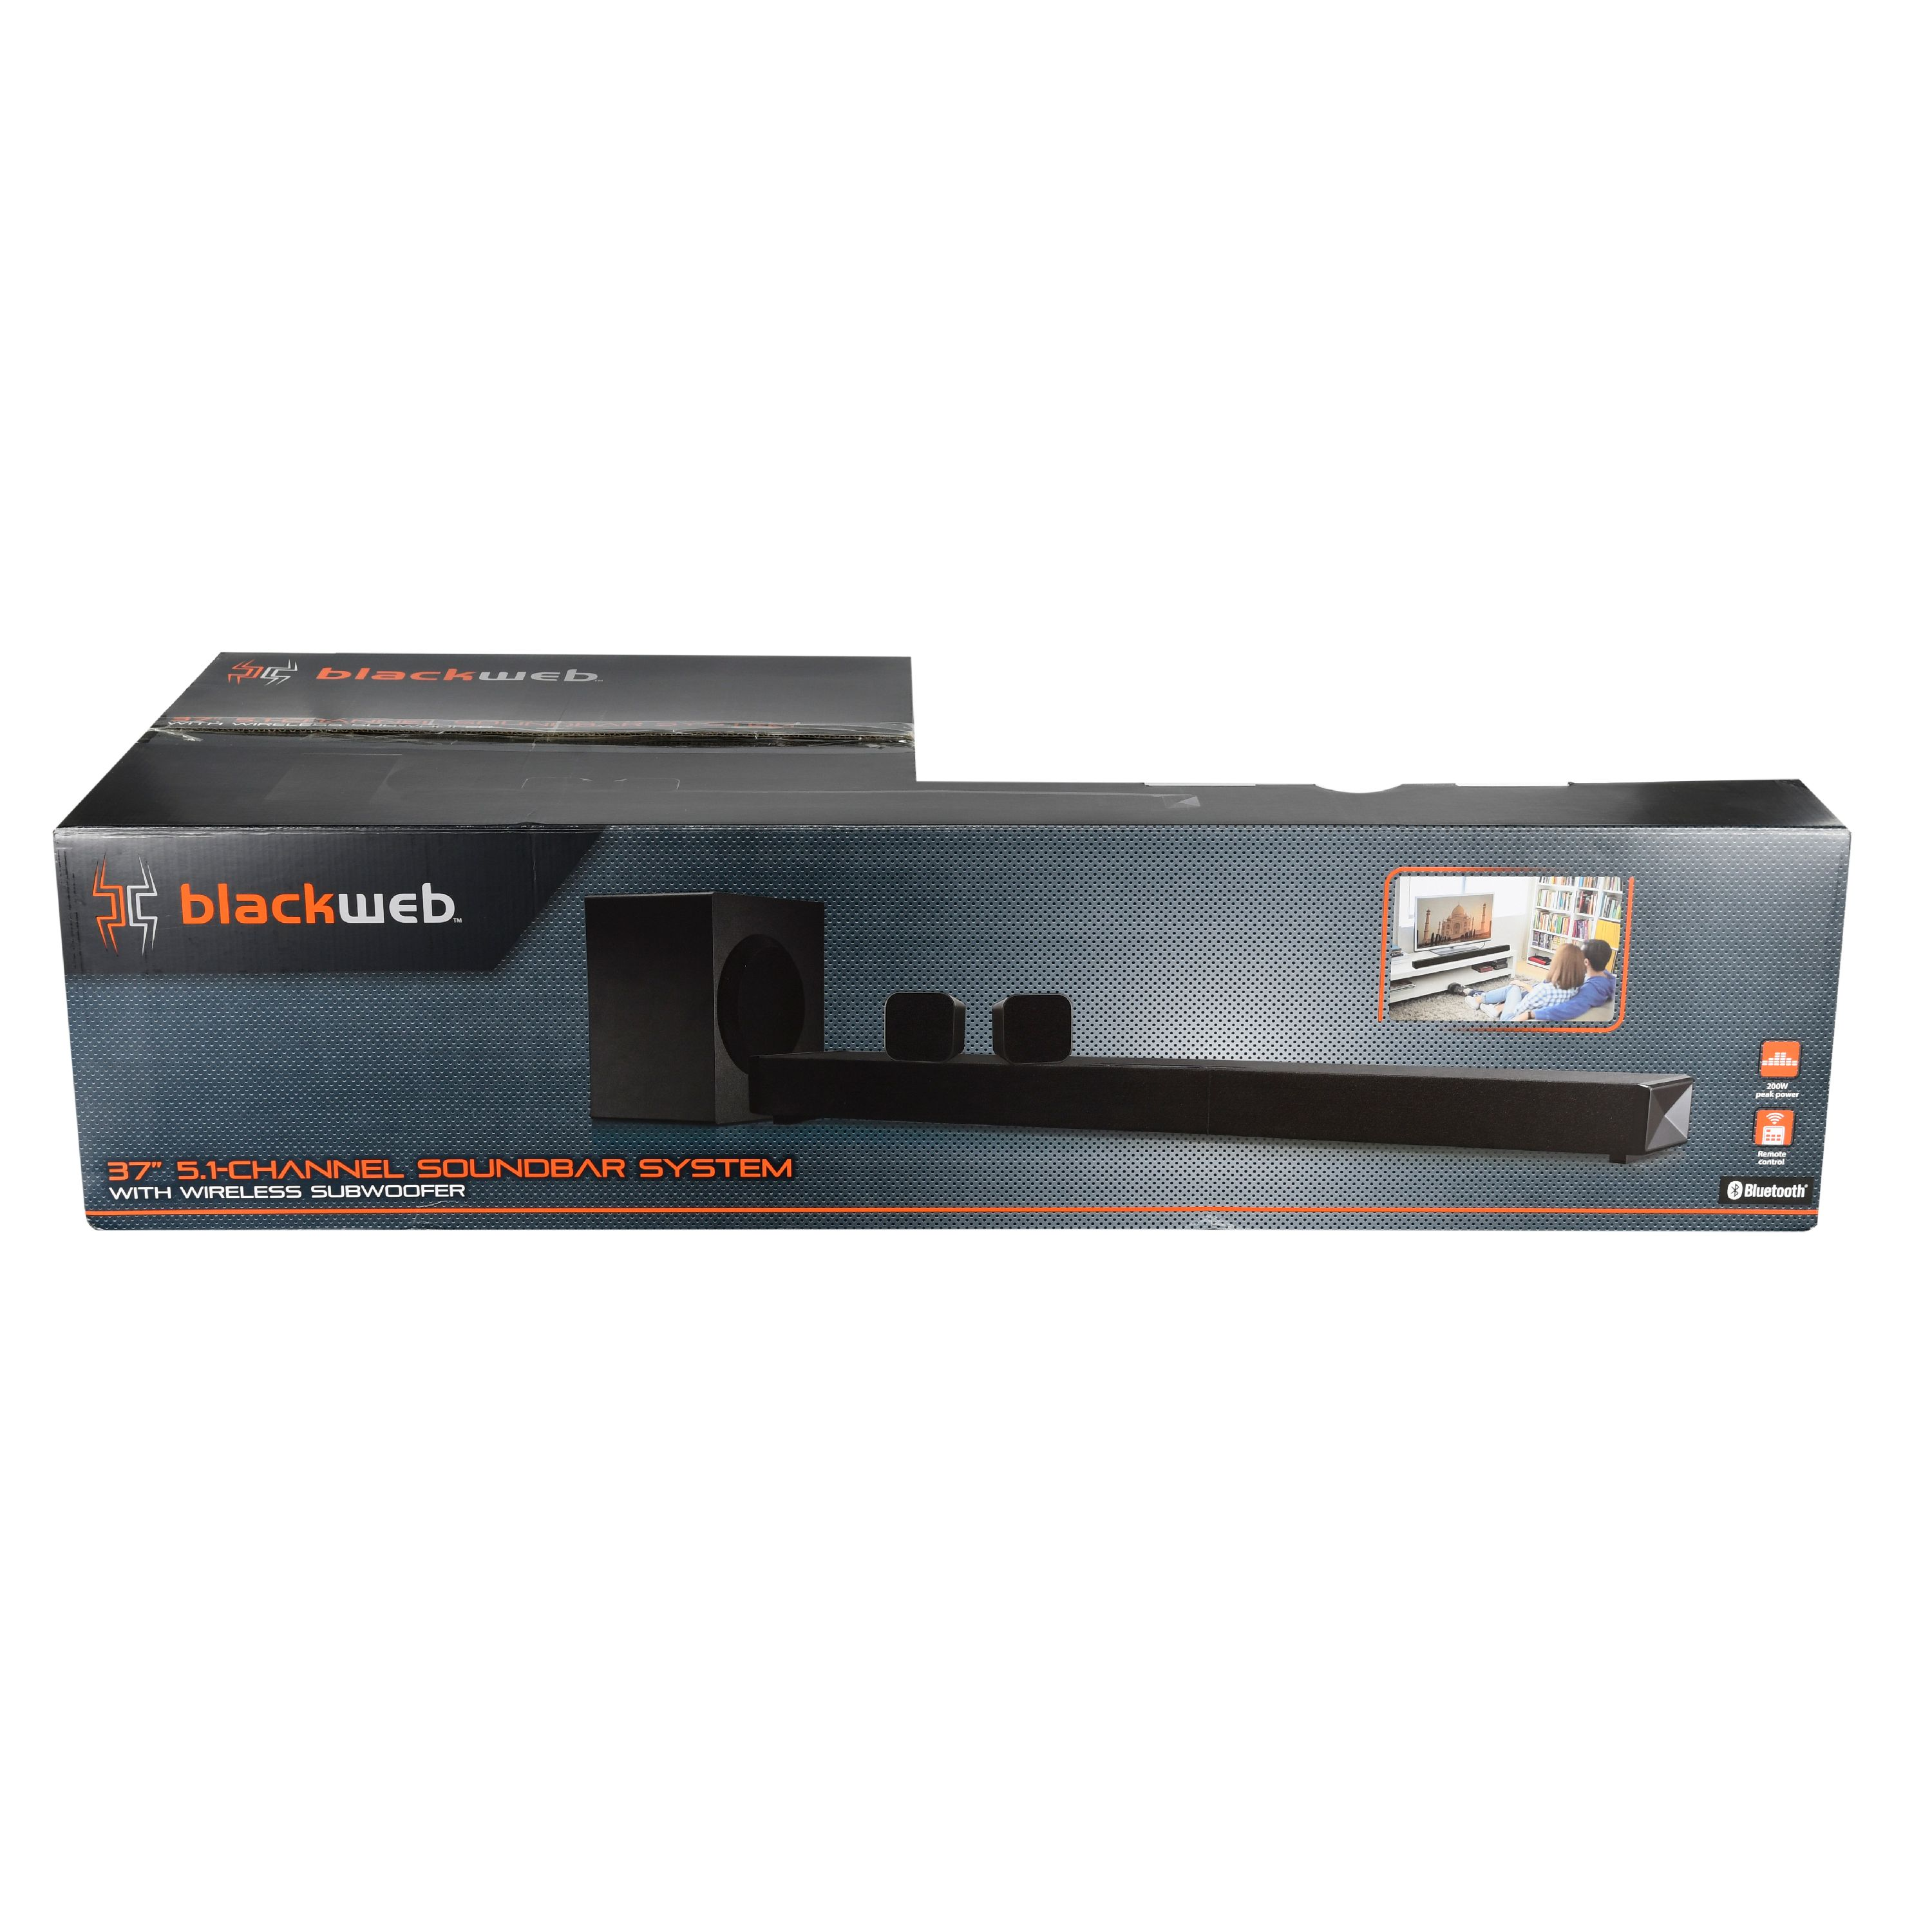 Blackweb Bt 5 1 Channel Soundbar System With Subwoofer 37